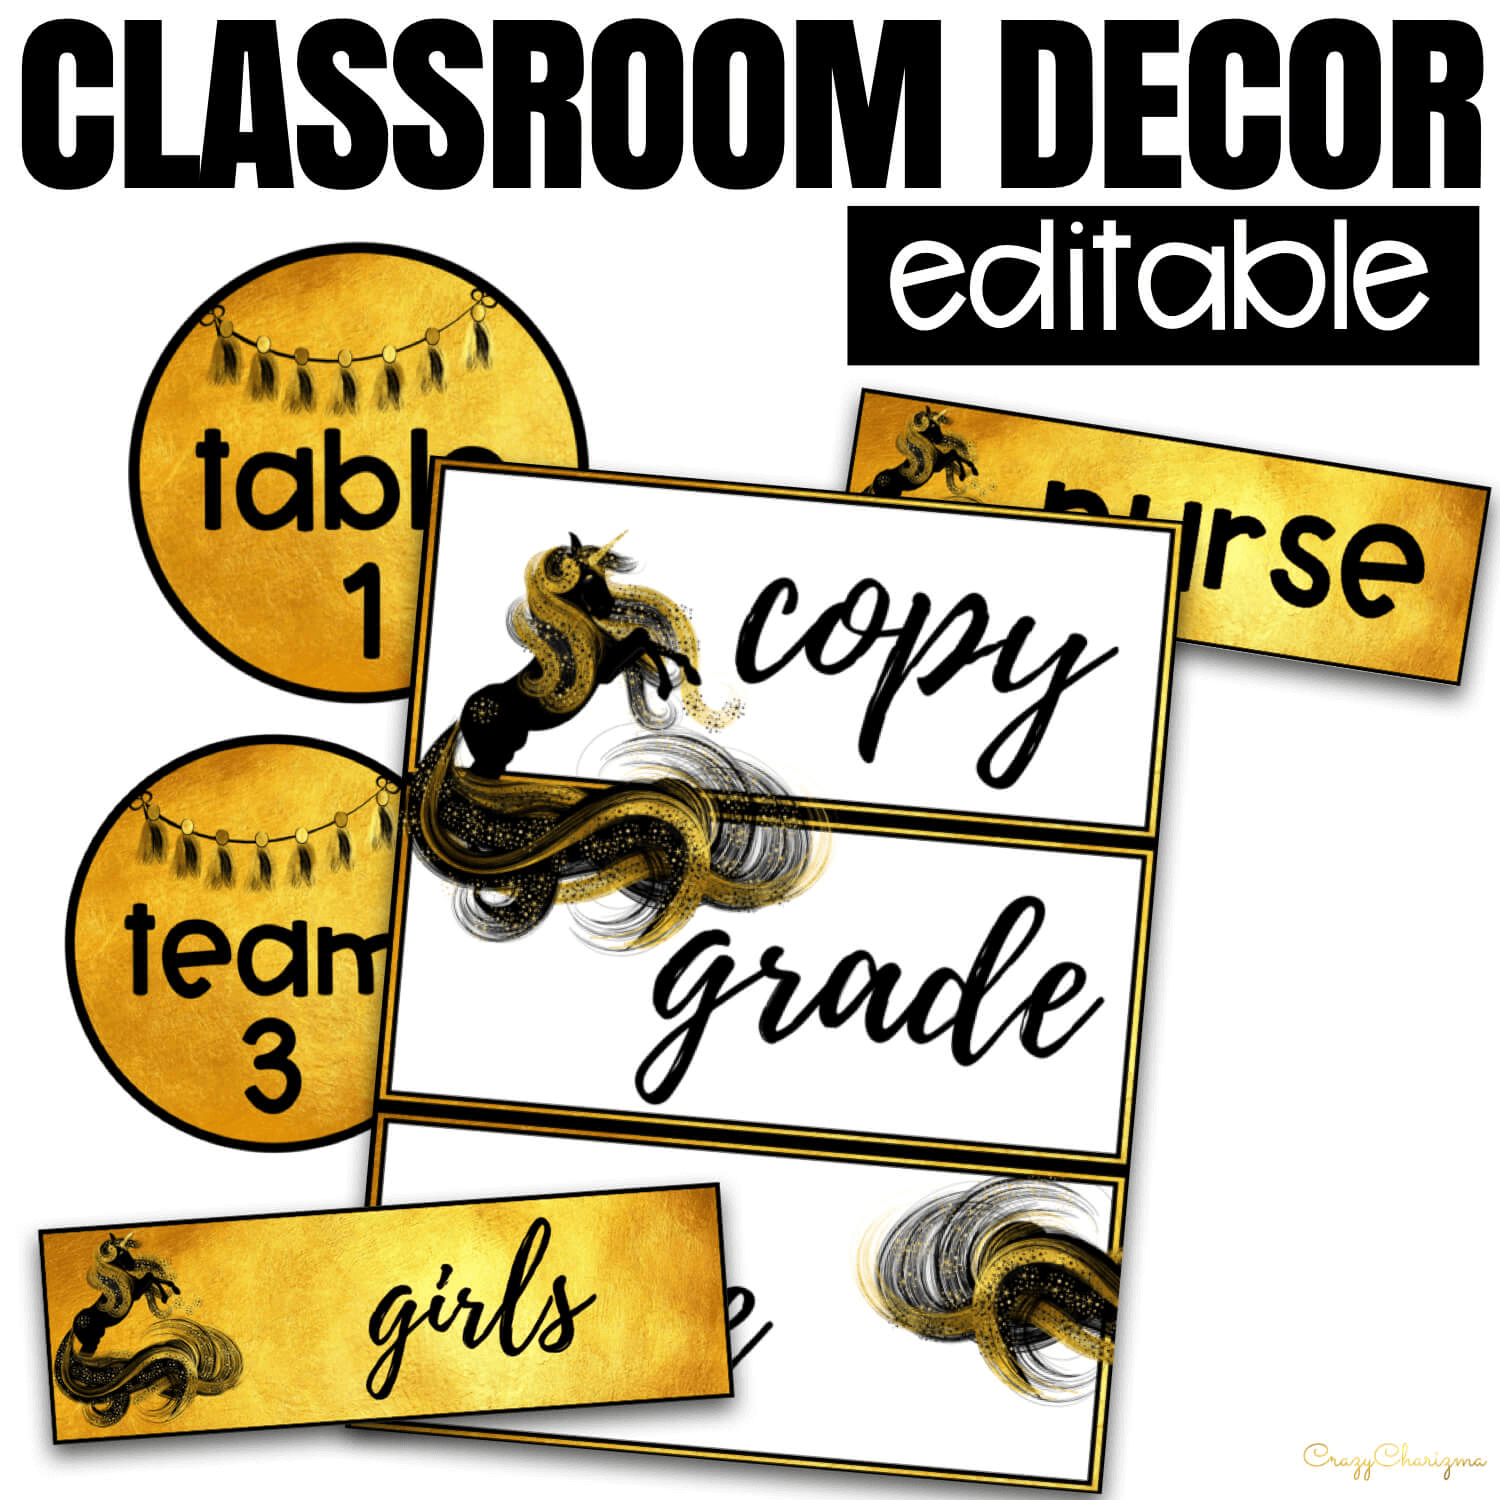 Looking for bright and clear classroom decor? Spice your classroom with these beautiful EDITABLE hall passes, table tags, team signs and pencil tags.